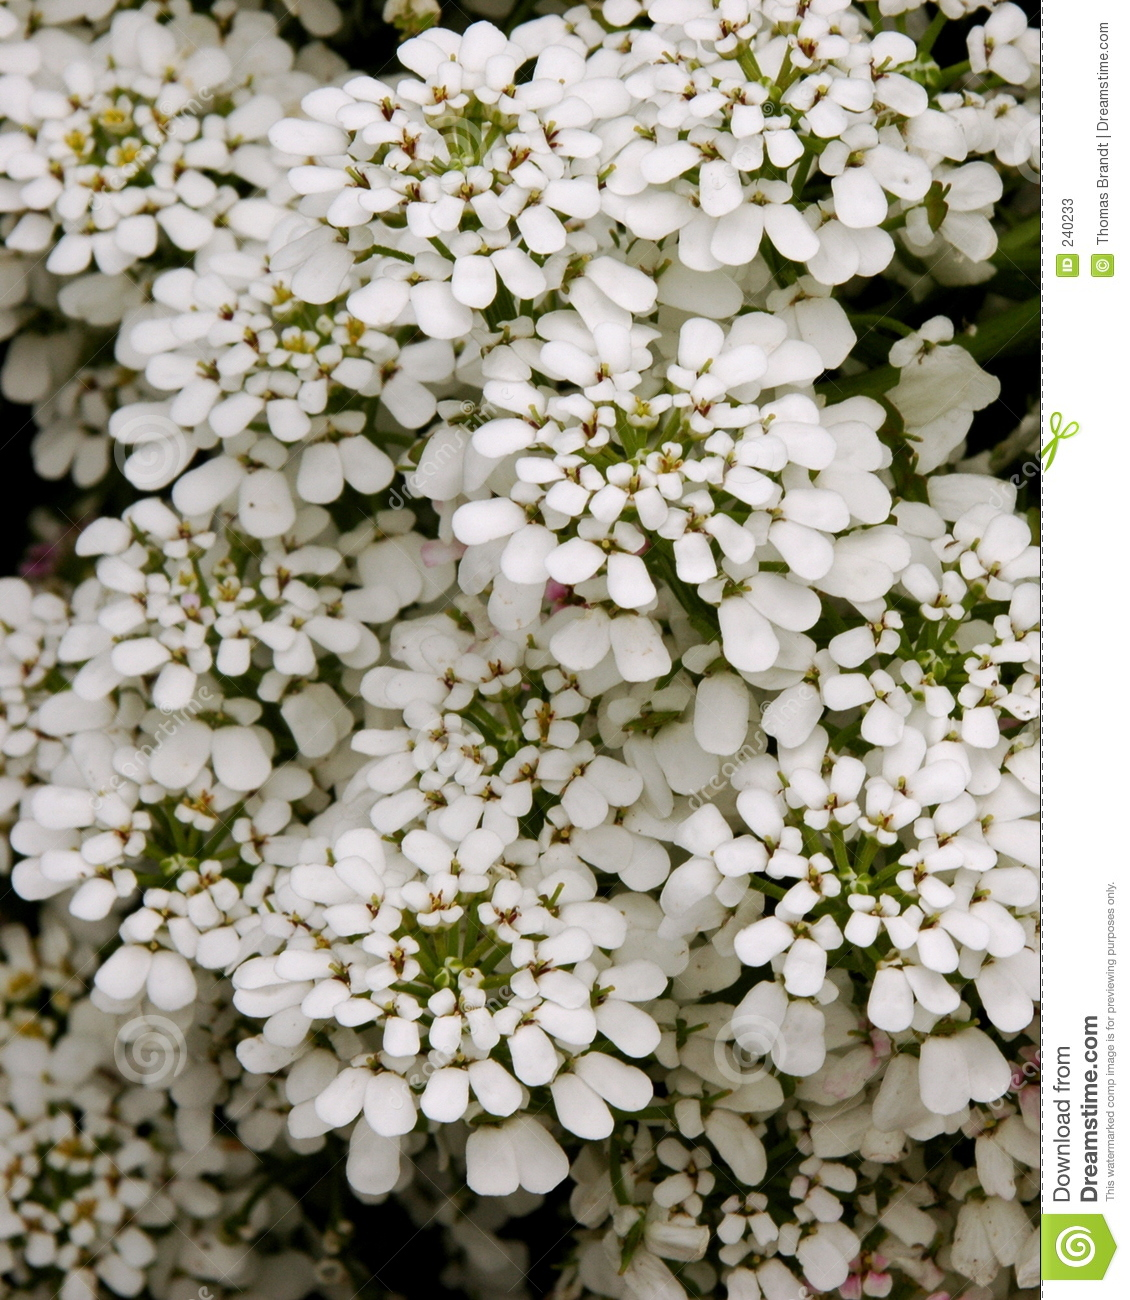 Perennial candytuft stock photos image 240233 for Iberis sempervirens